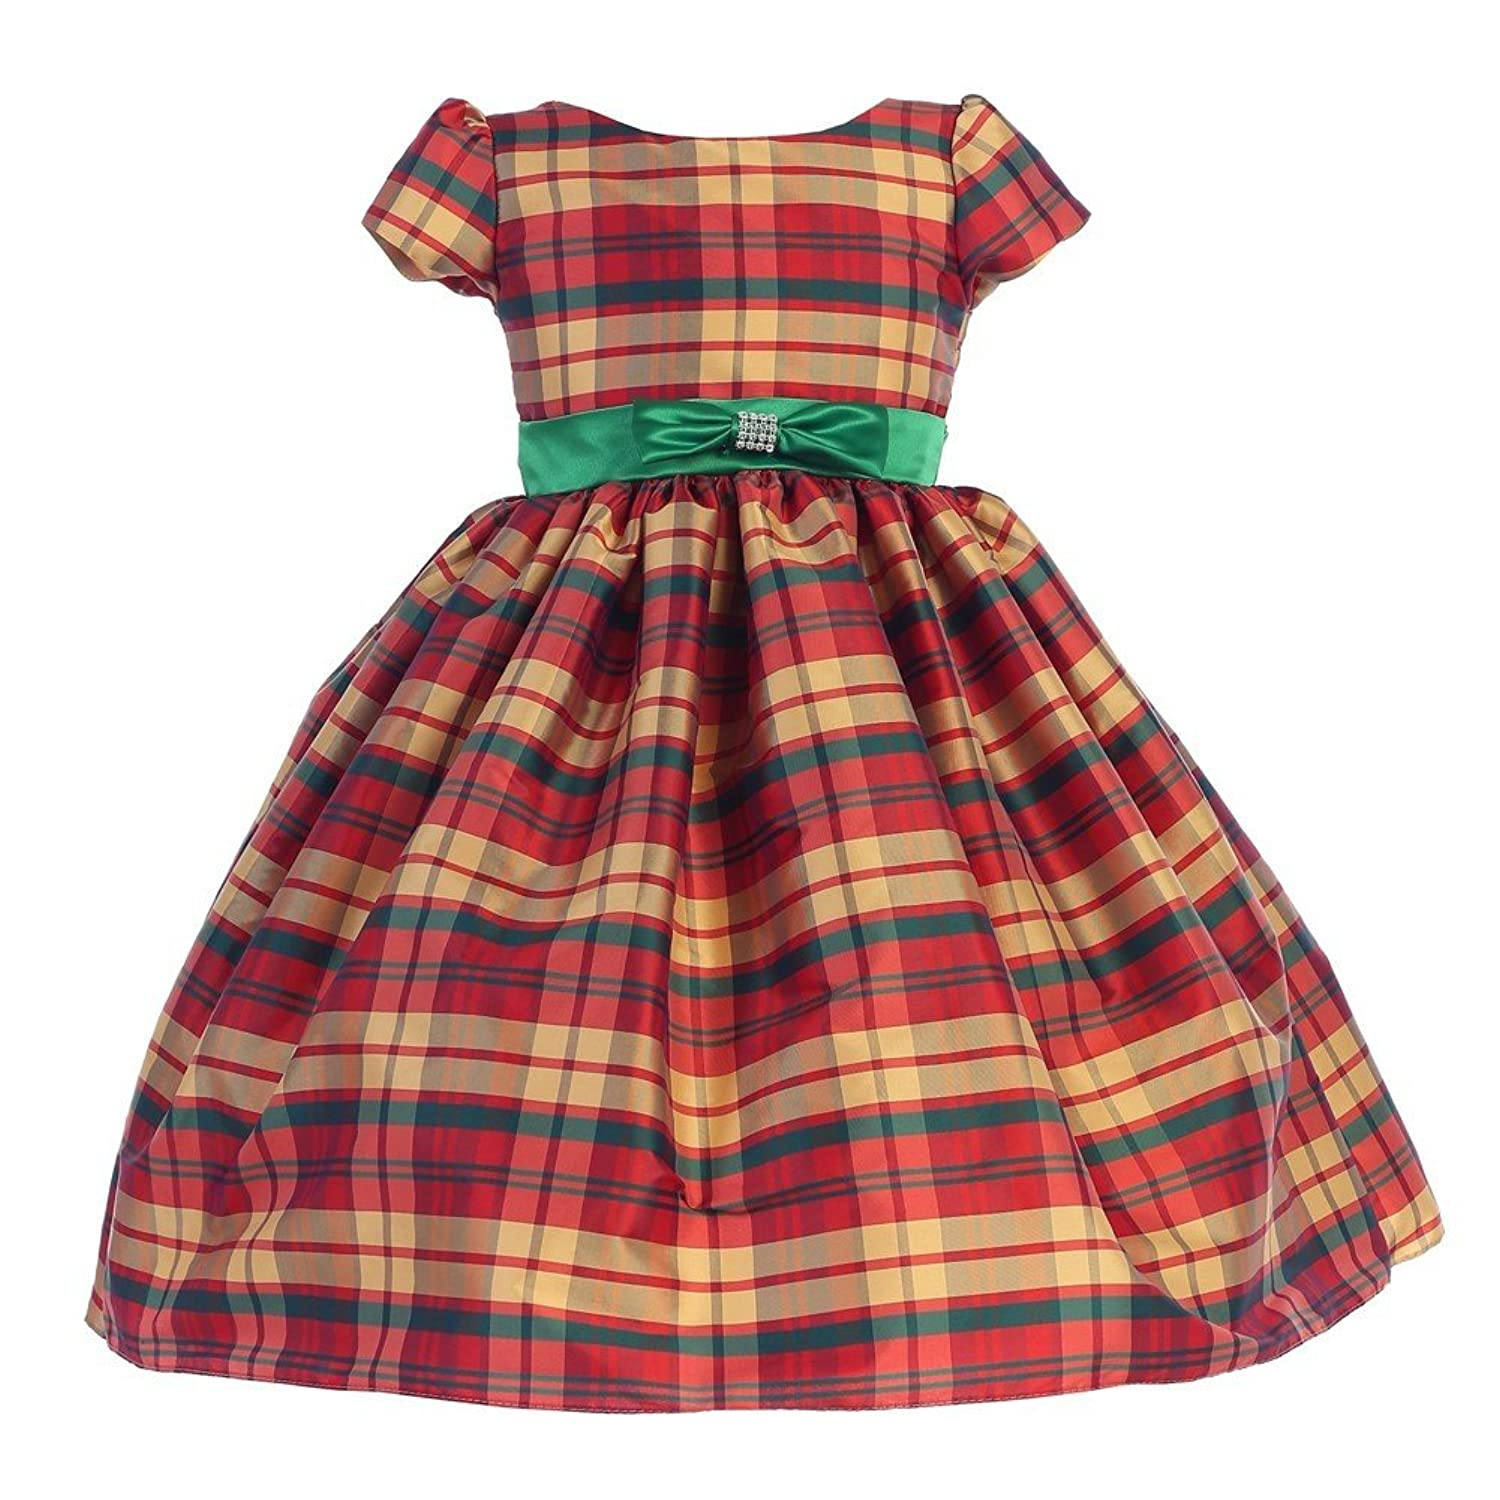 Kids 1950s Clothing & Costumes: Girls, Boys, Toddlers Ellie Kids Little Girls Red Green Bow Short Sleeve Tartan Christmas Dress 2-6 $40.00 AT vintagedancer.com